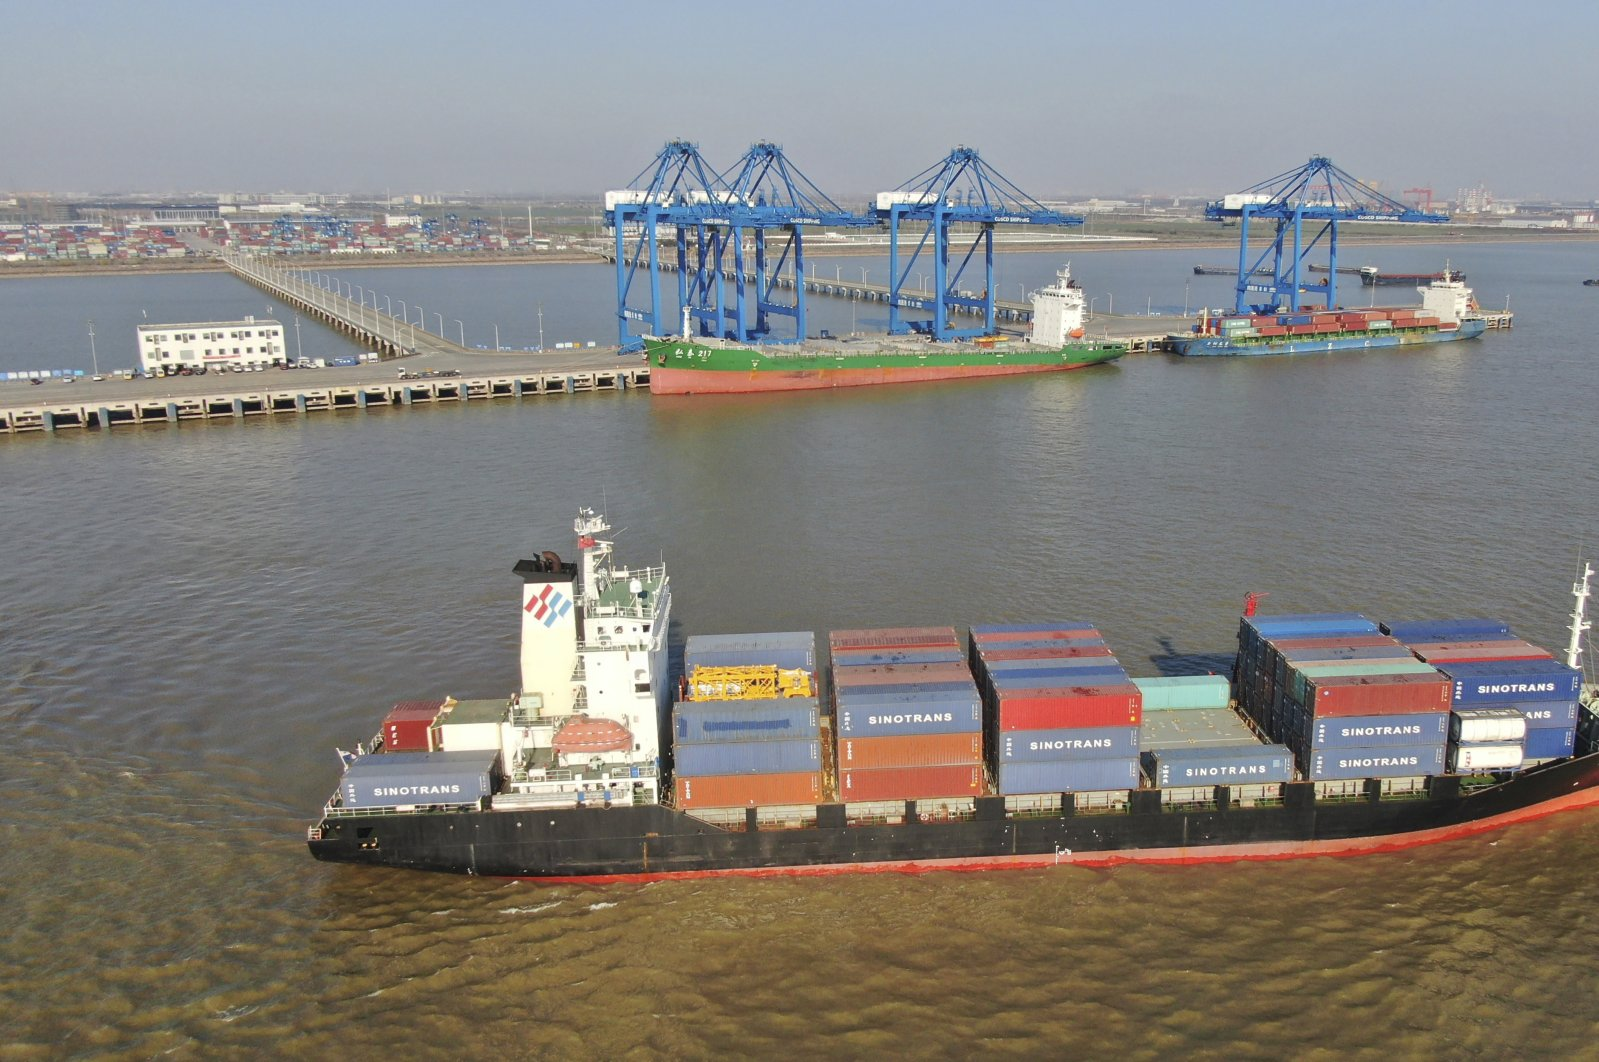 A container ship leaves a port in Nantong in eastern China's Jiangsu Province, Dec. 20, 2020. (AP Photo)